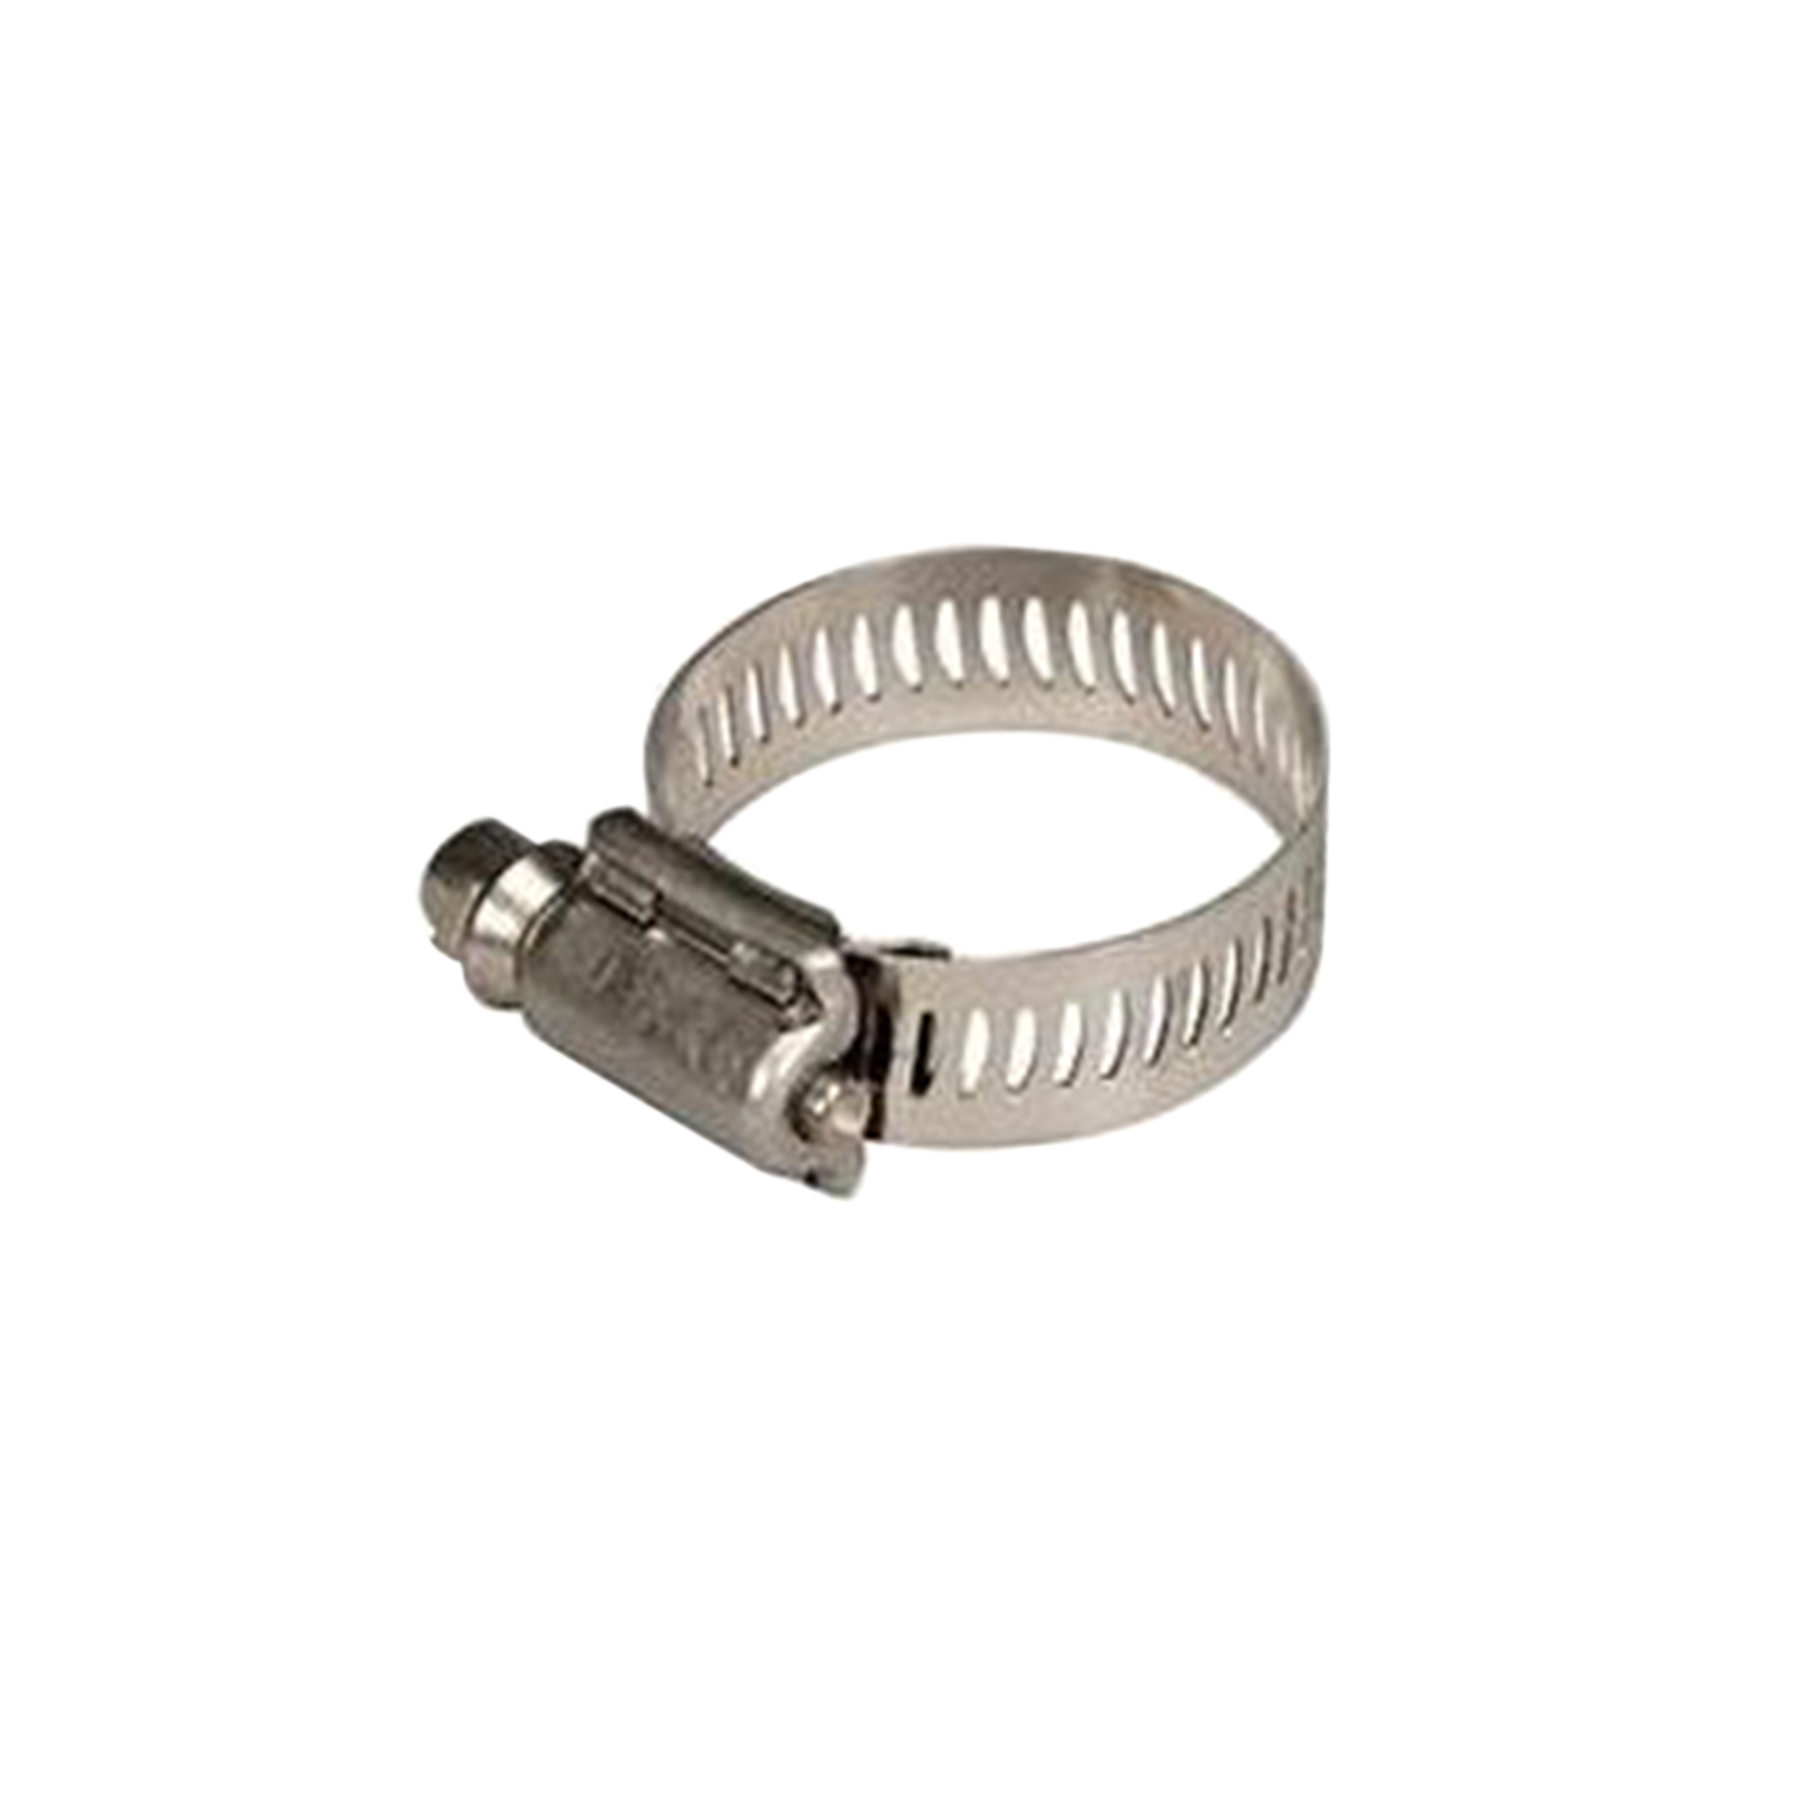 CONS Hose Clamp, 1-1/8 in.